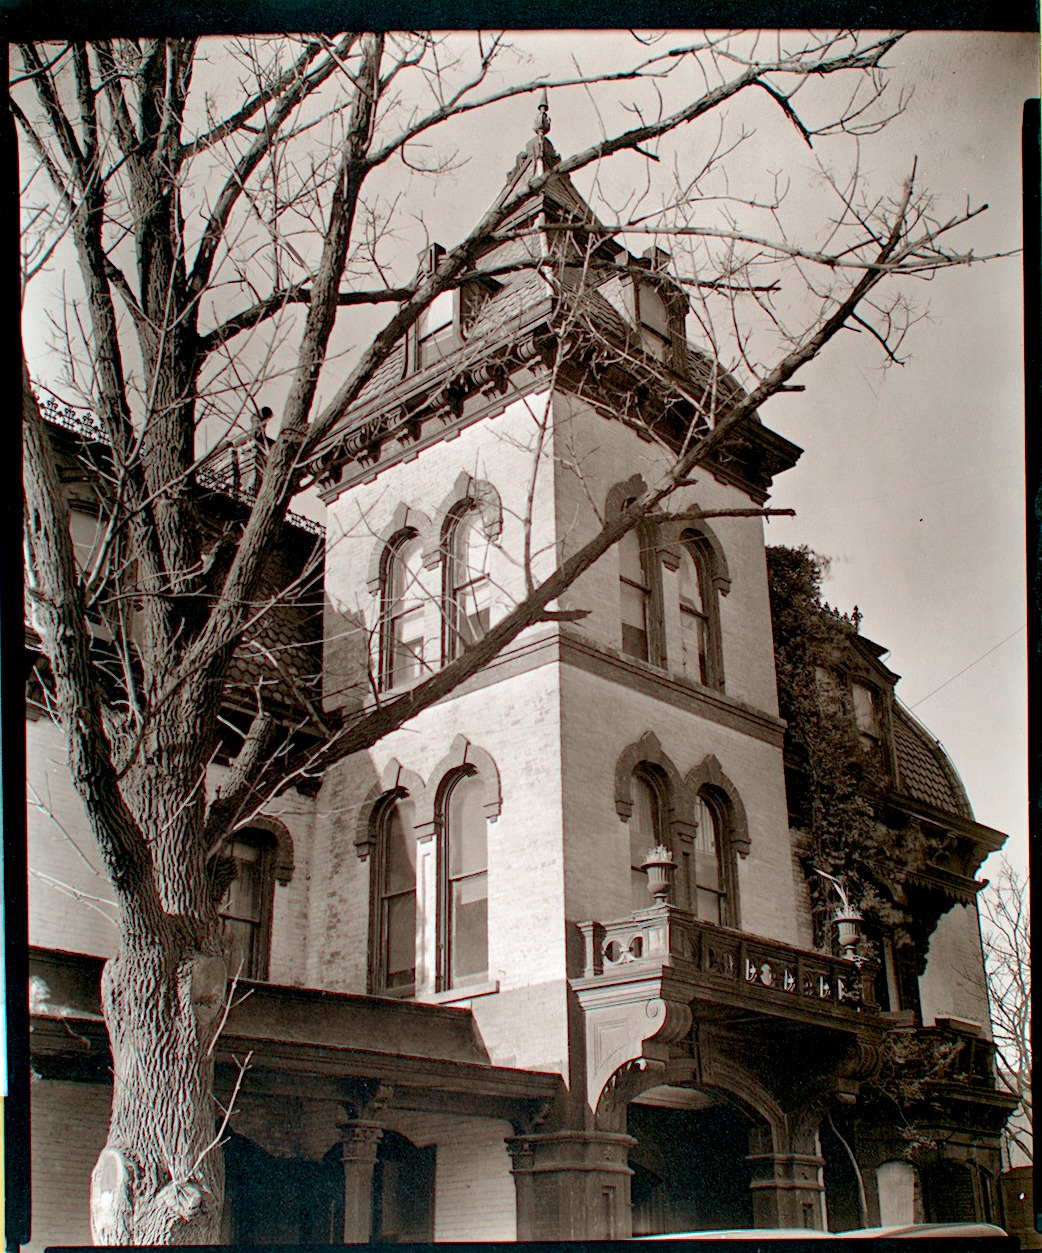 Haunted House York University: A Spooky Gothic Mansion In Upper Manhattan ‹� New York City